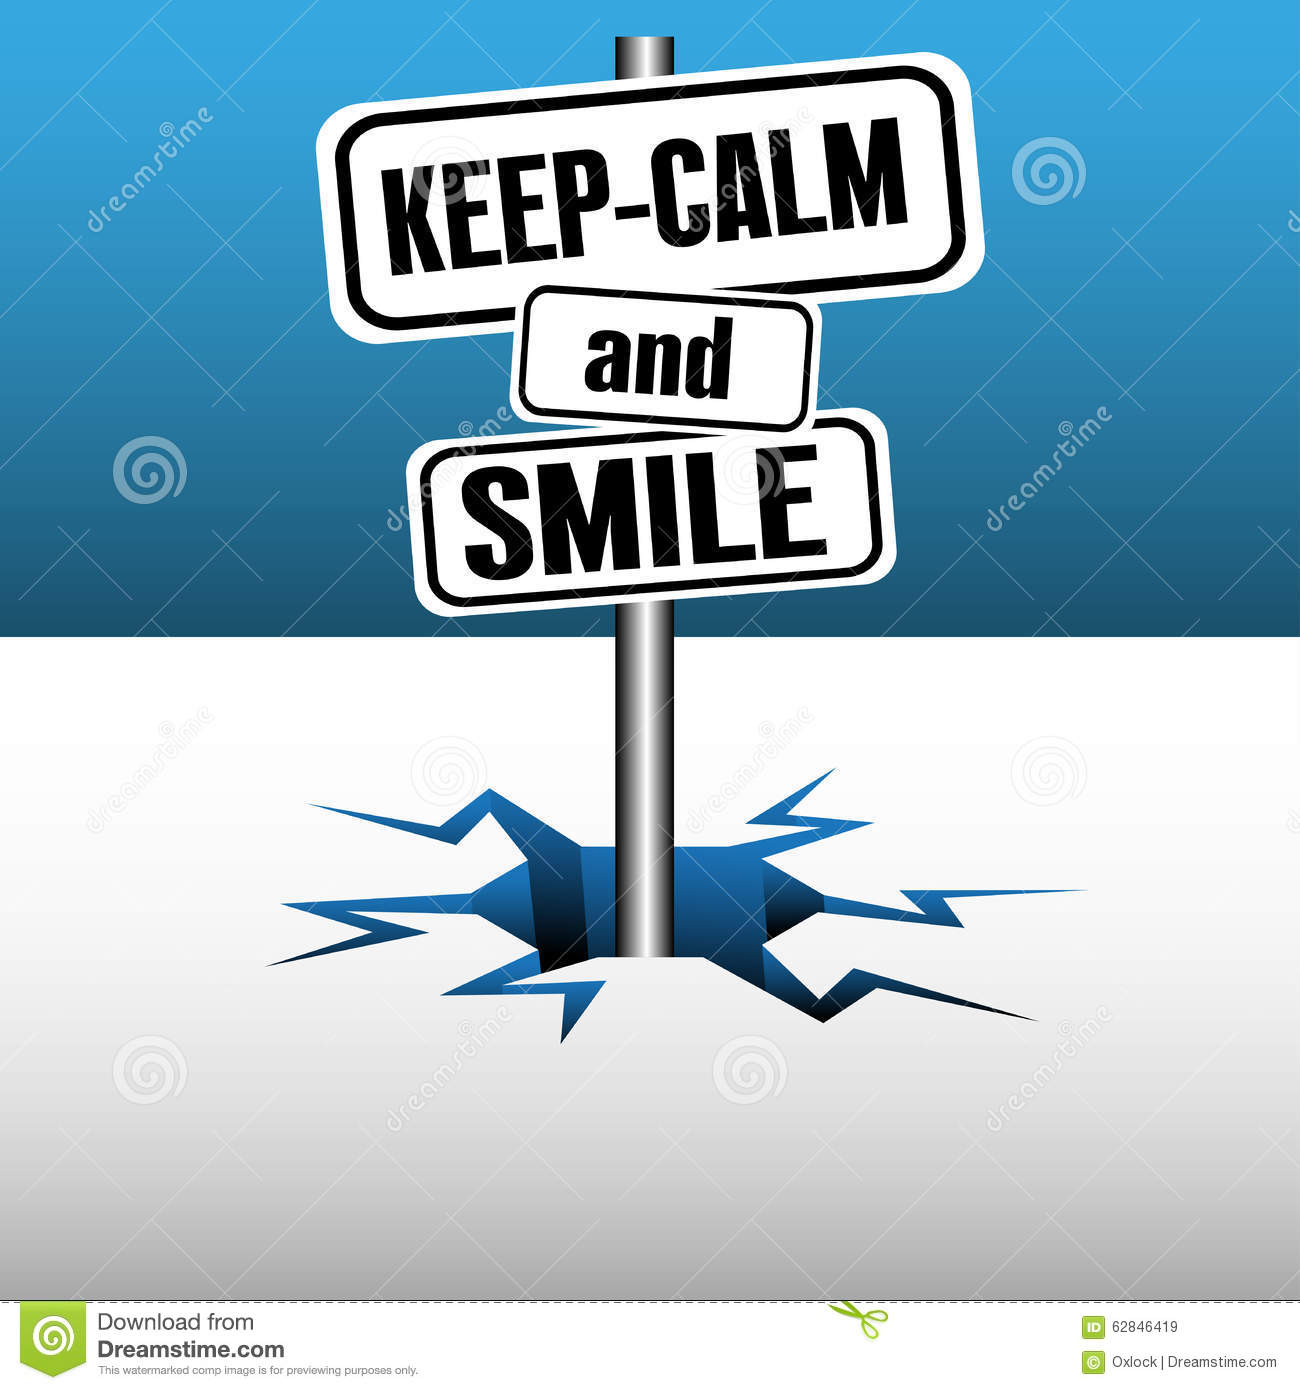 Keep Calm And Smile Quotes: Keep Calm And Smile Stock Vector